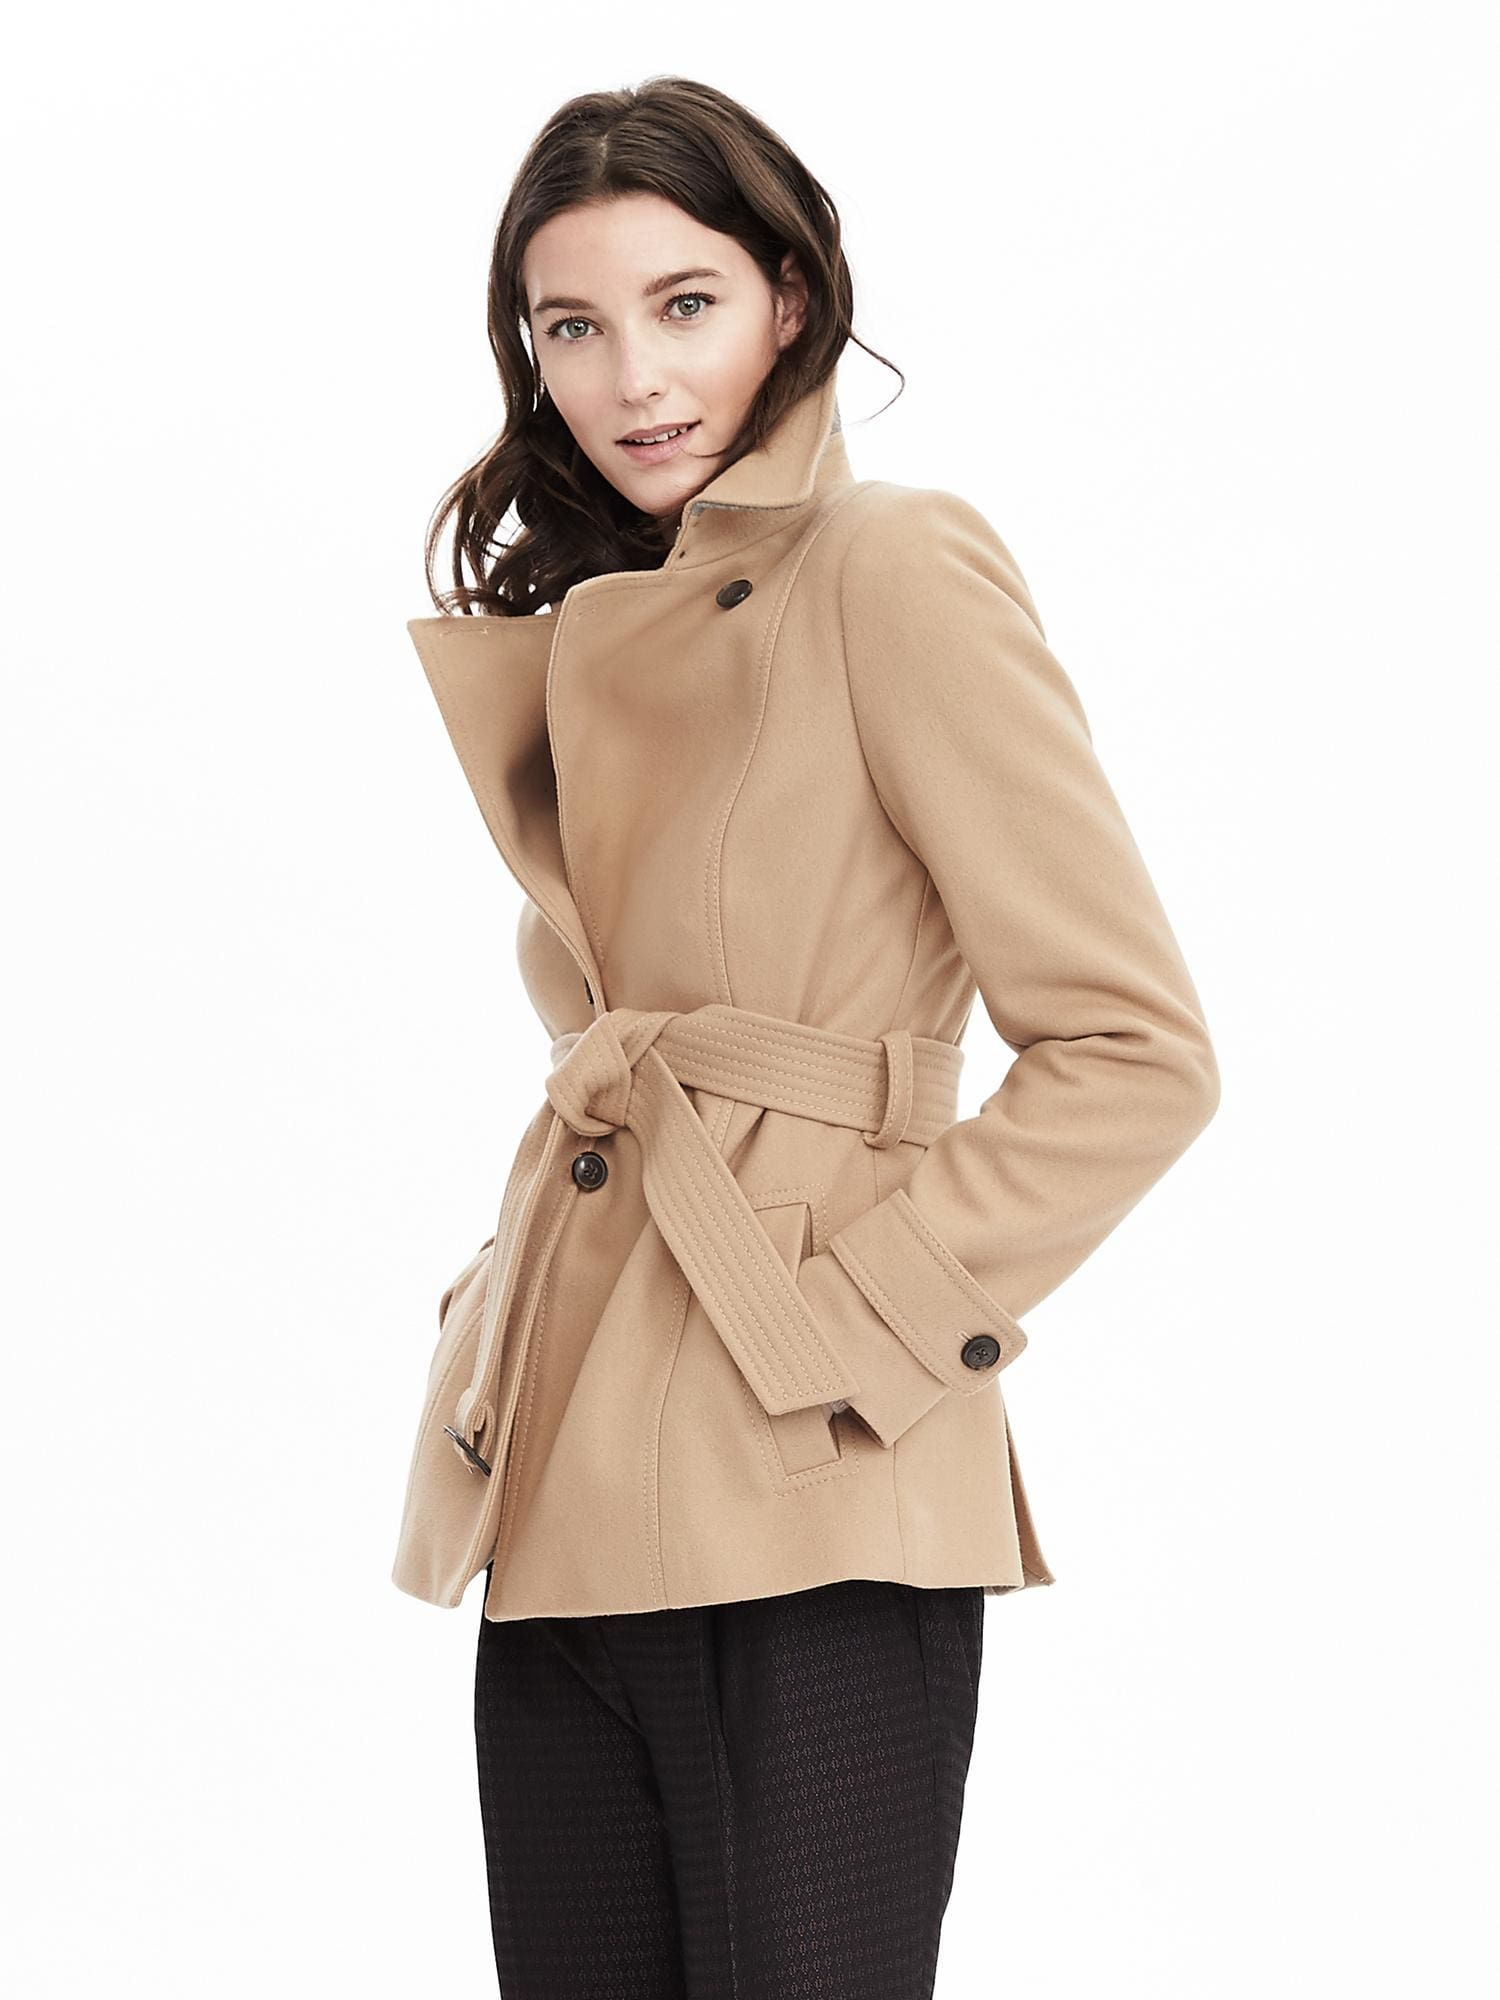 Melton Wool Short Trench Coat in Camel | DYT ❋ 3/1 | Pinterest ...